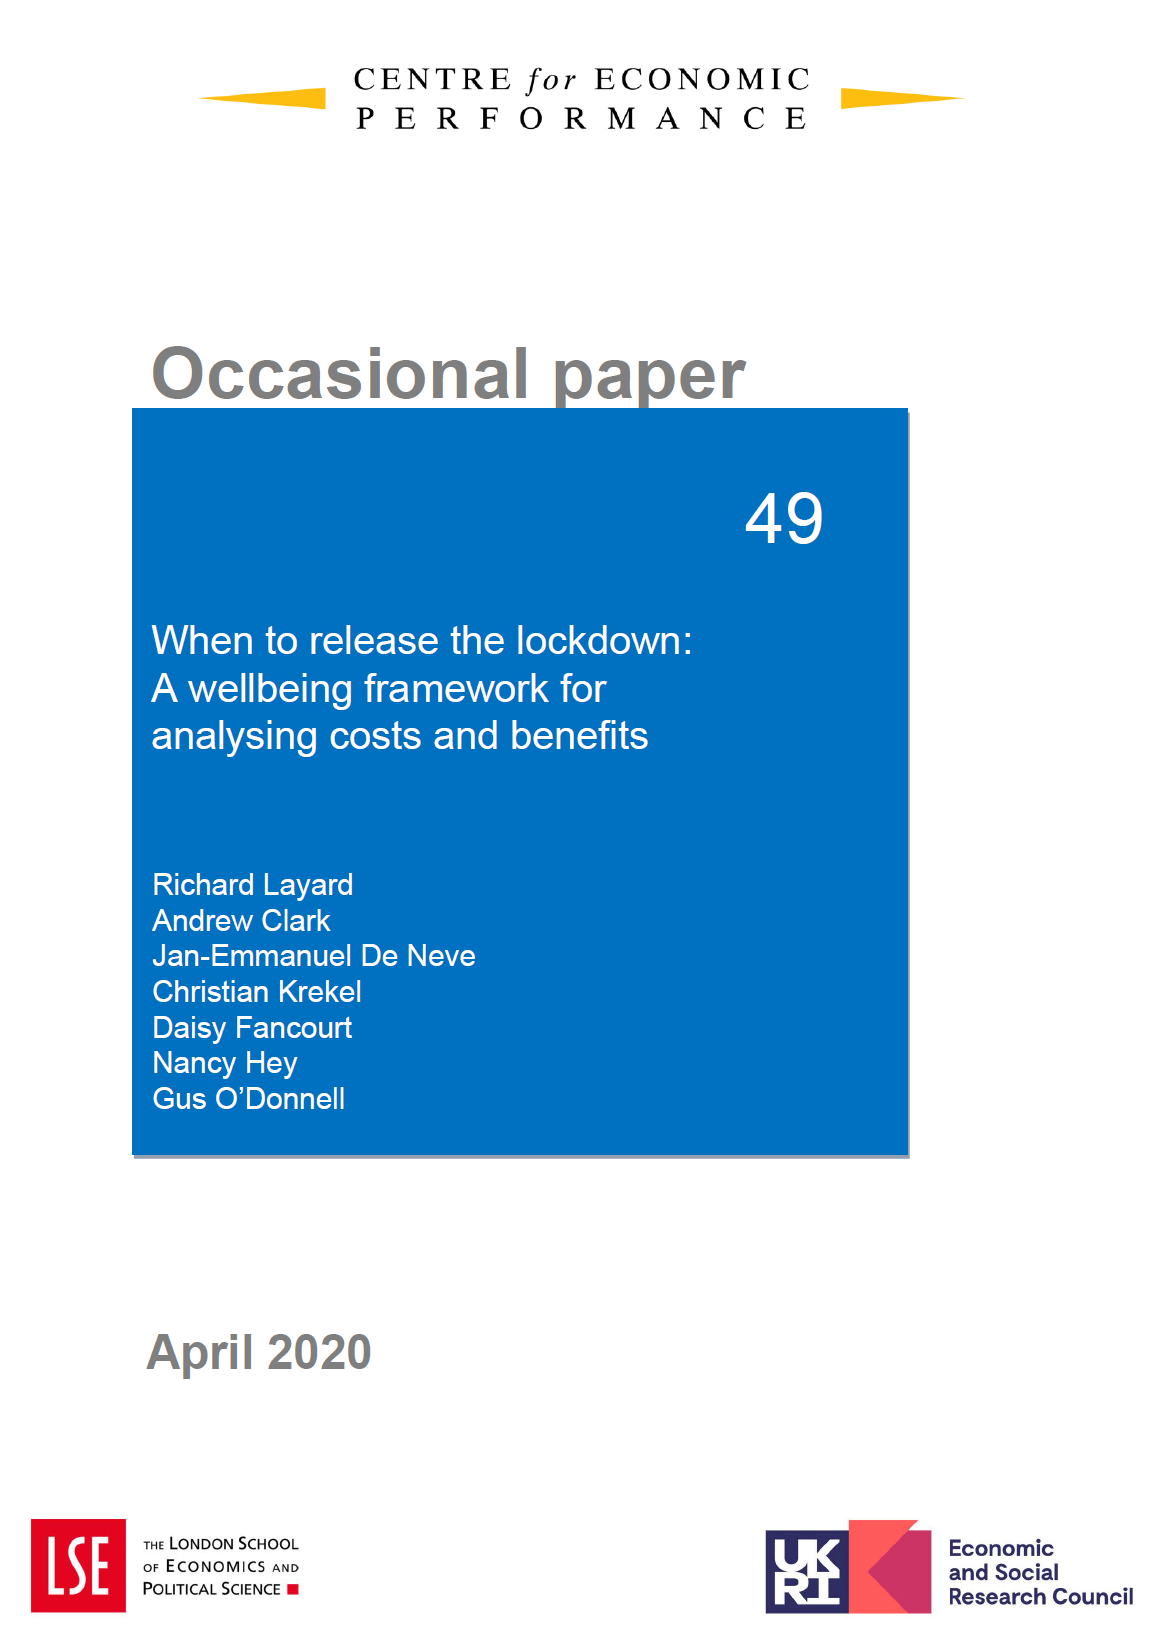 When to release the lockdown: a wellbeing framework for analysing costs and benefits